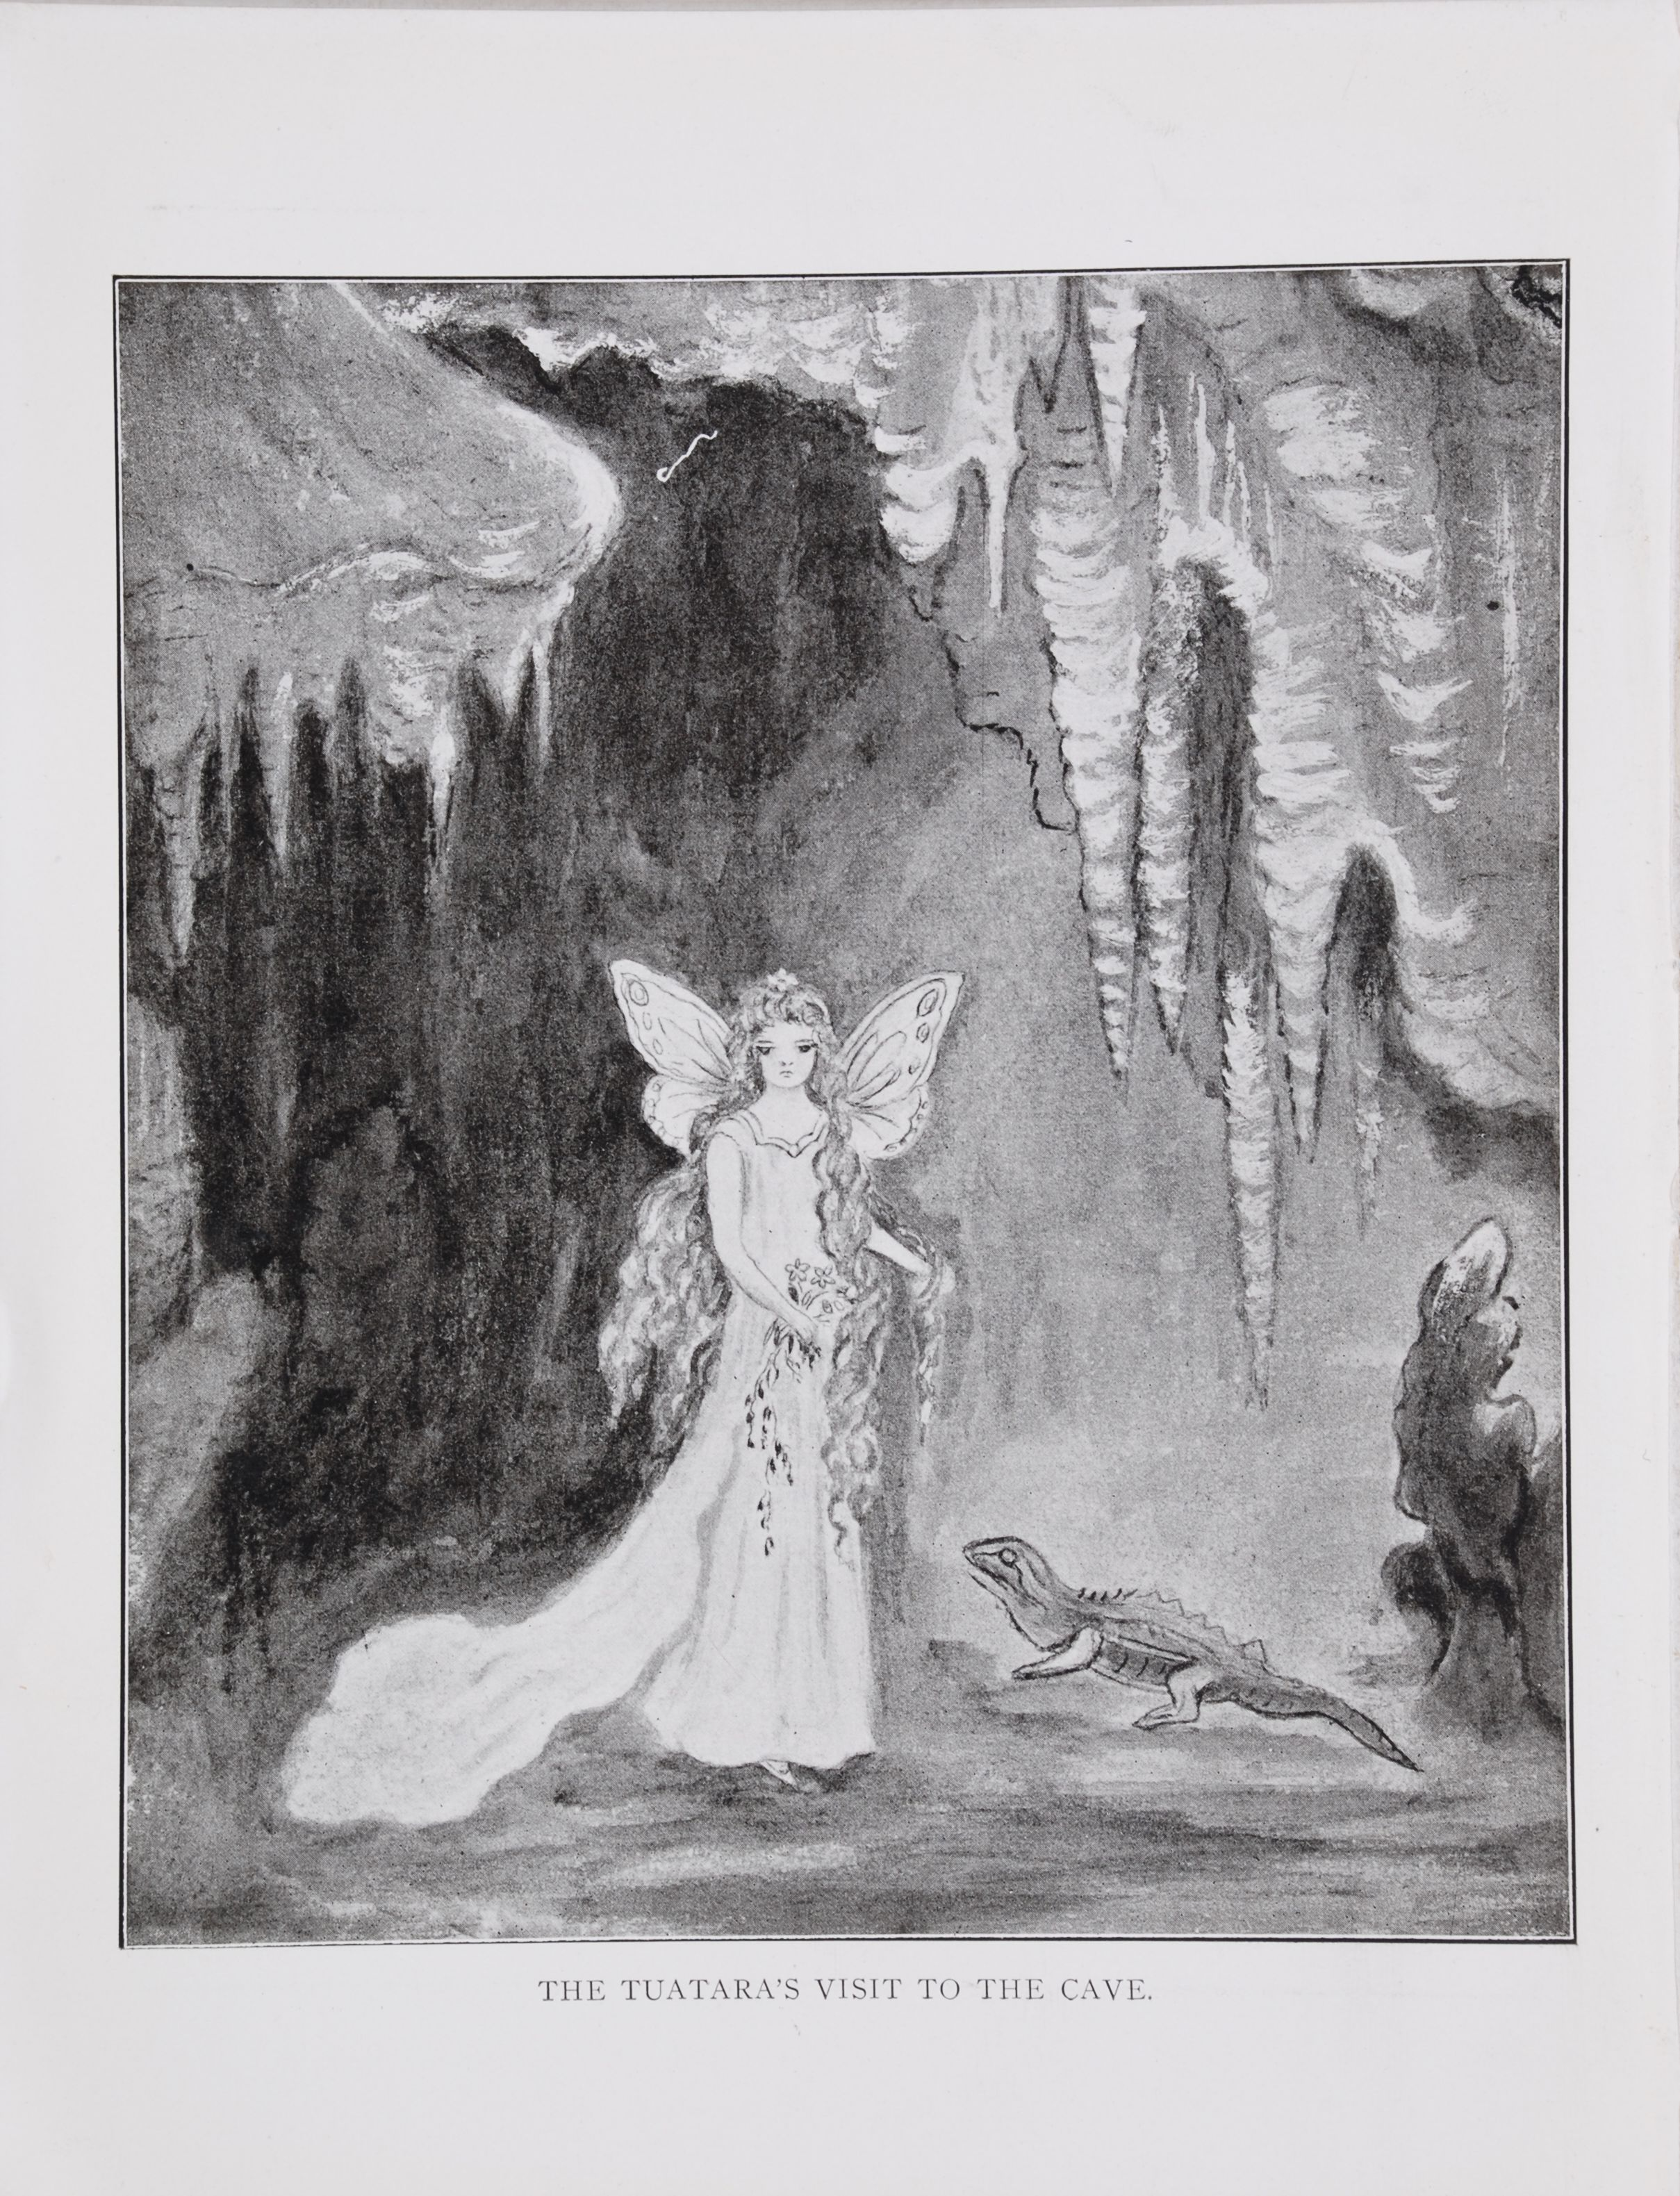 Moore, Sarah Rebecca. Fairyland in New Zealand: a story of the caves. Illustrations by Emily Cumming Harris. Auckland: Brett Printing and Publishing, 1909.